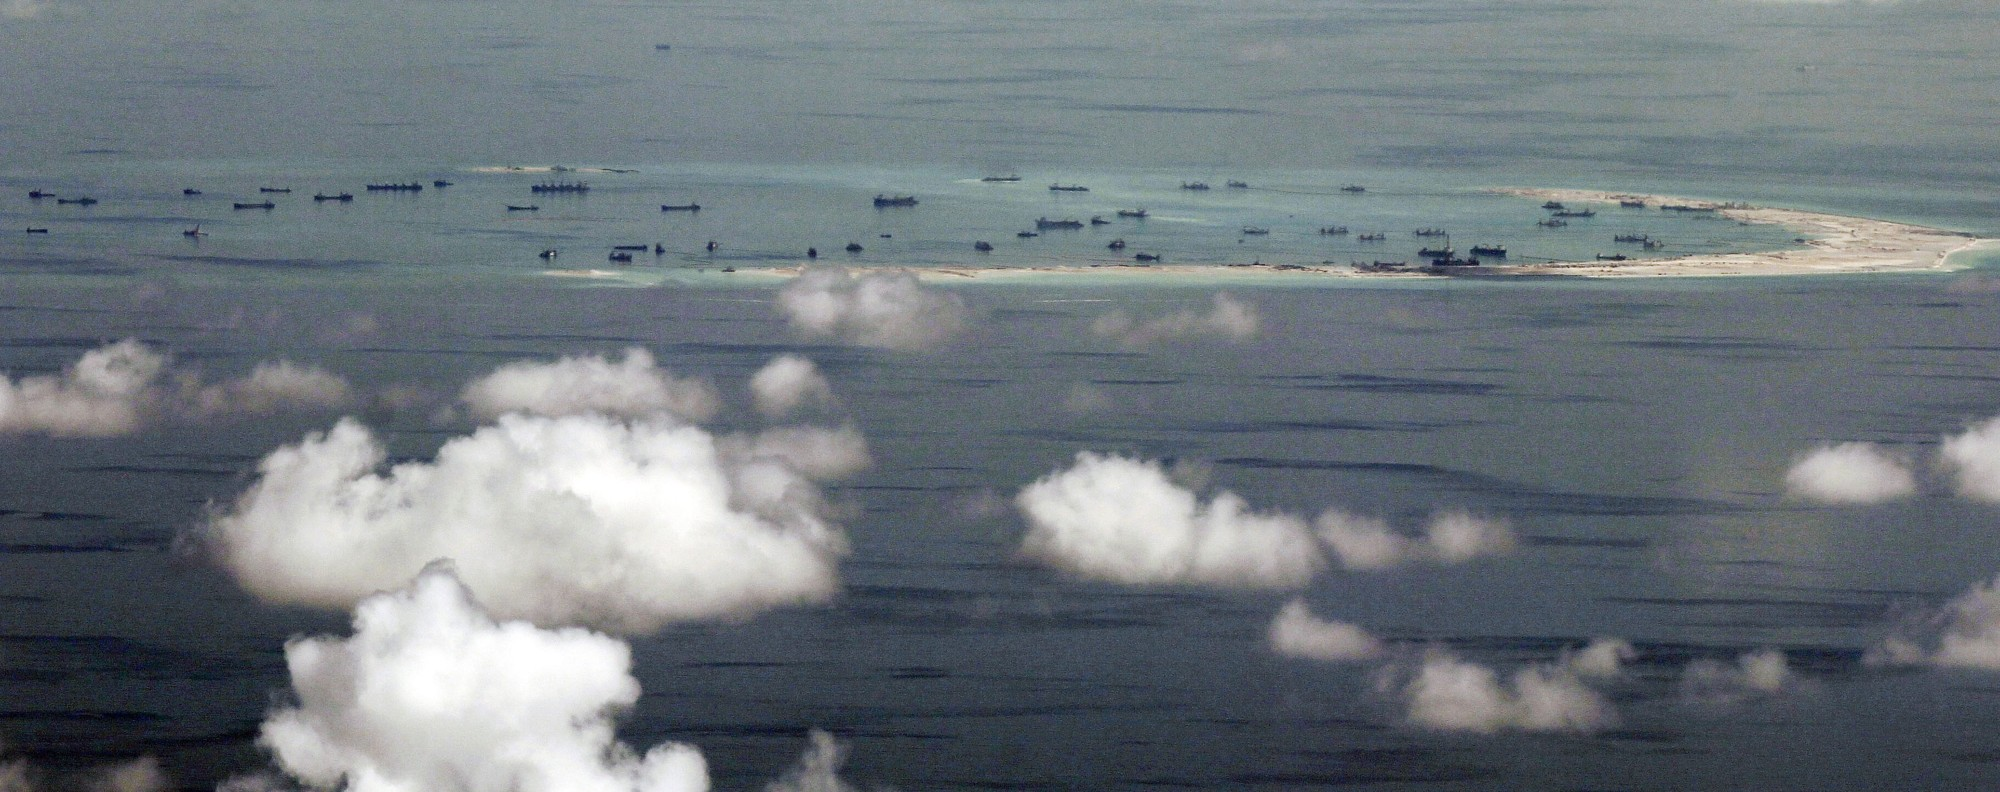 Mischief Reef in the South China Sea. Photo: AFP